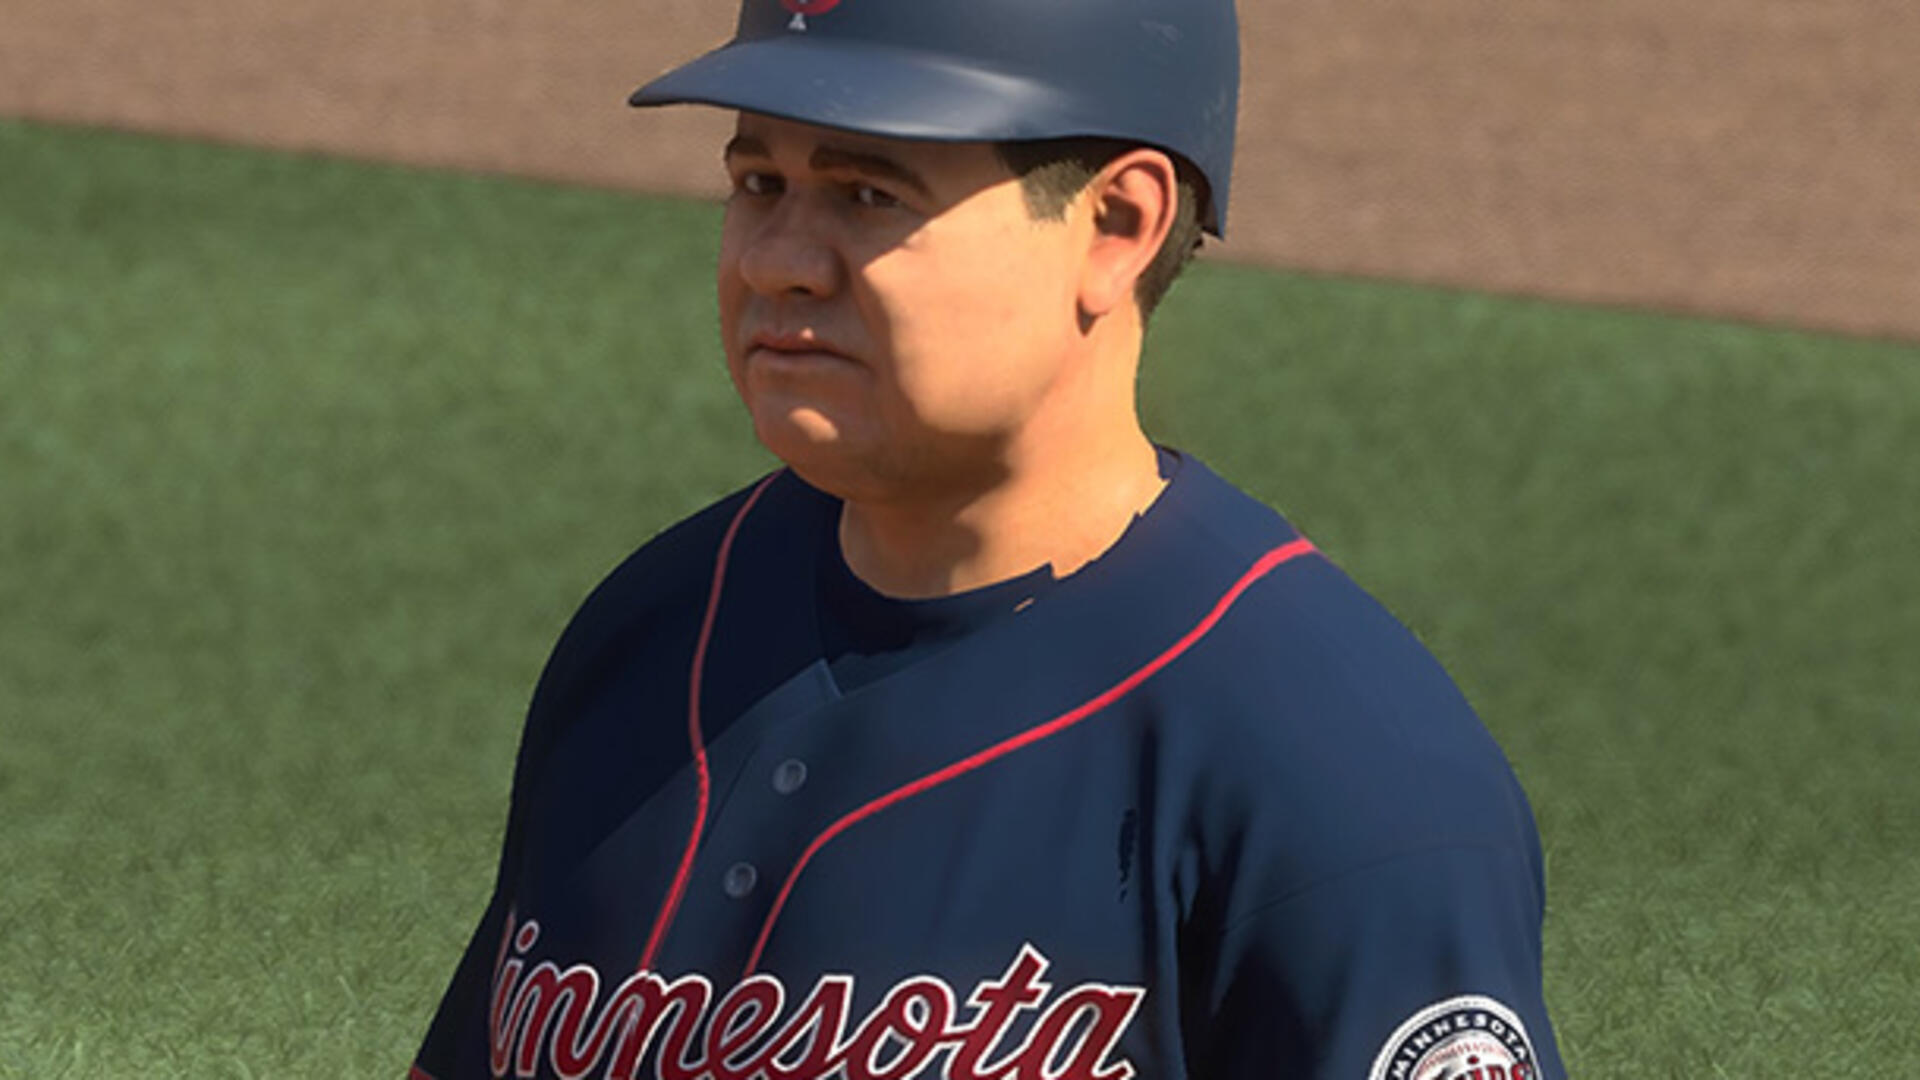 How to Put Babe Ruth on the Minnesota Twins and Other Random Teams